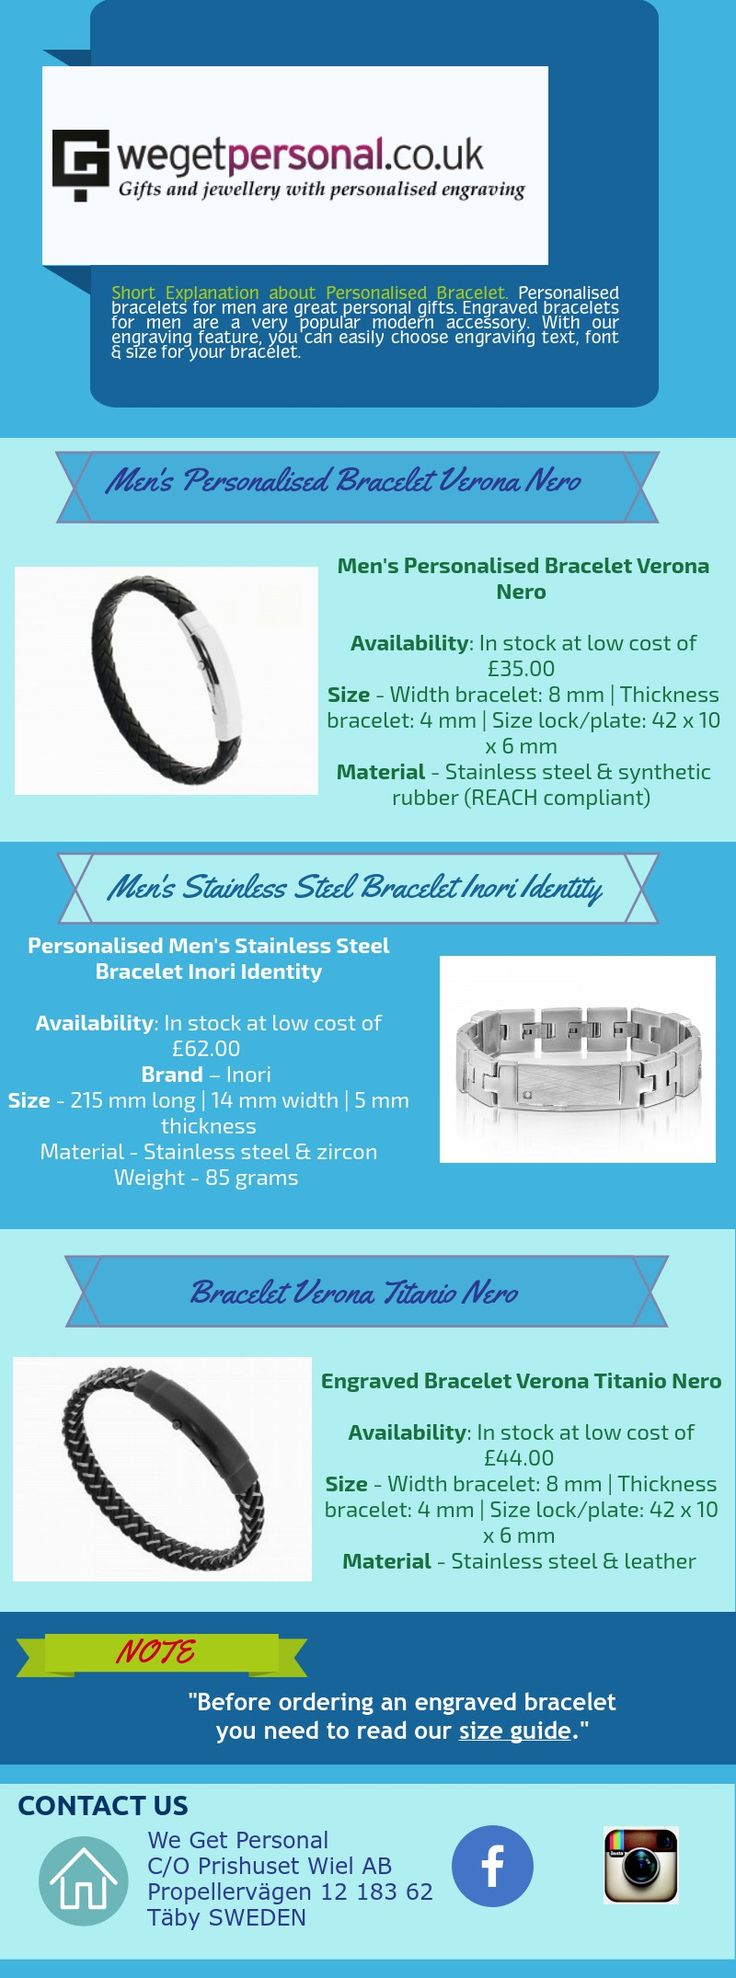 If you are searching Personalised bracelet to your friend or personal use, We Get Personal UK is the place where you can get many types of engraved bracelet